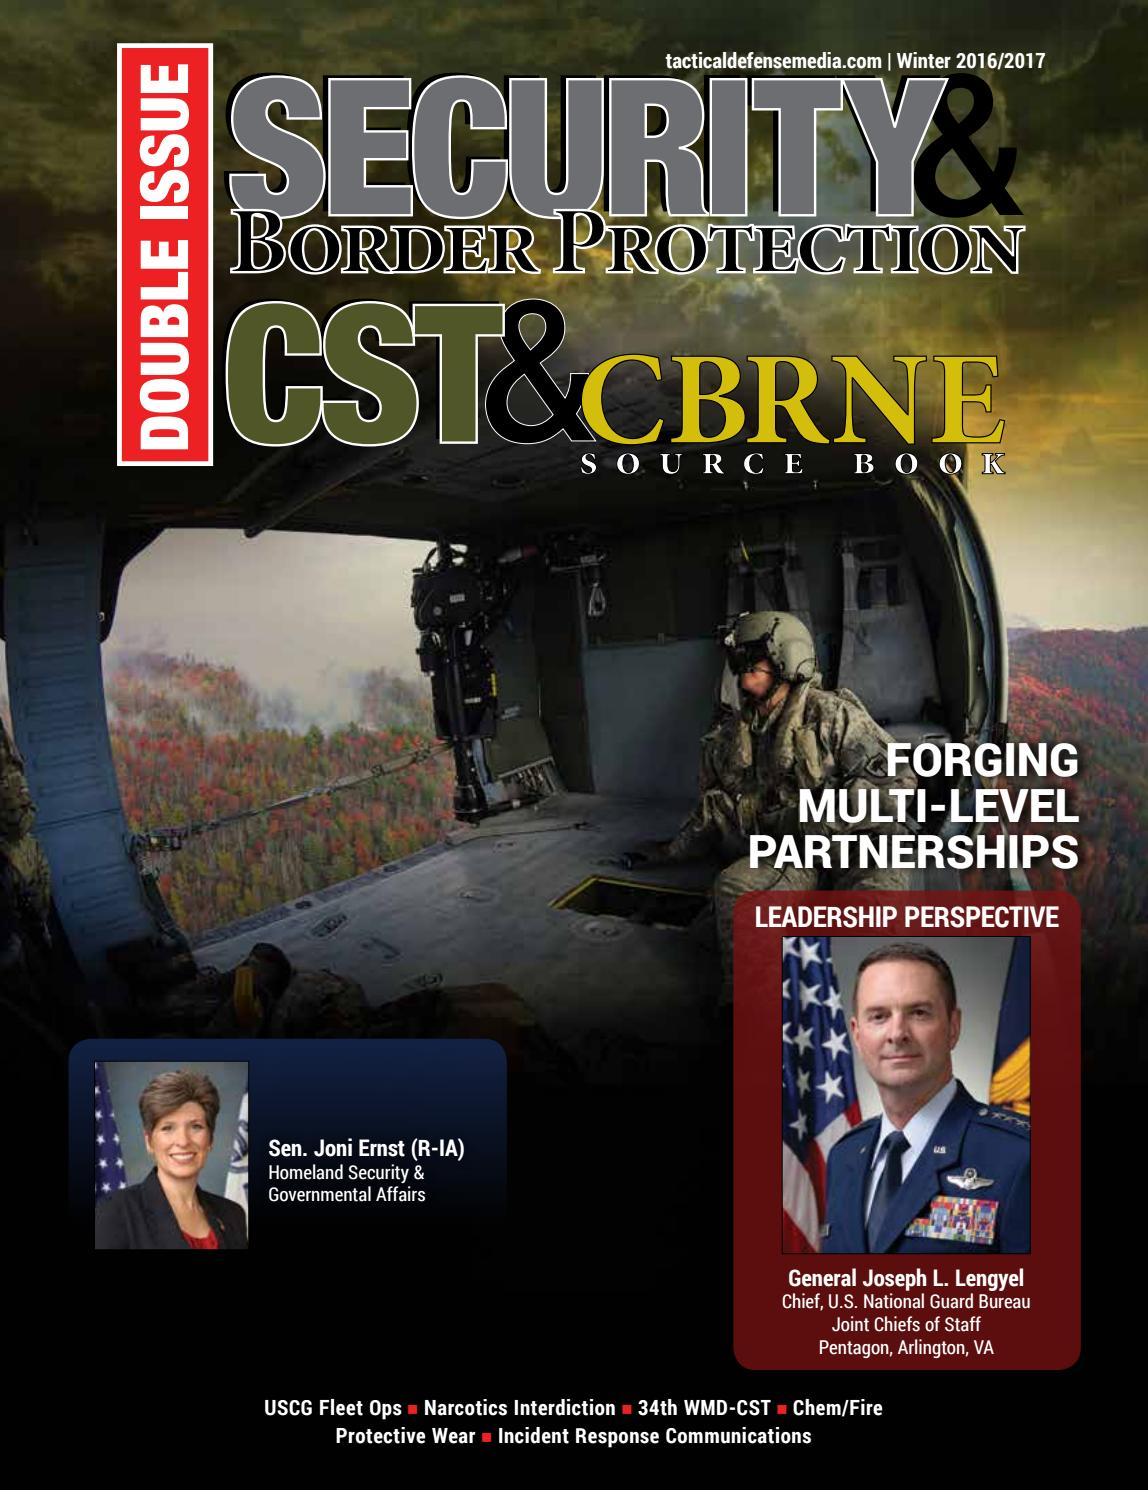 cst cbrne source book summer by tactical defense media issuu